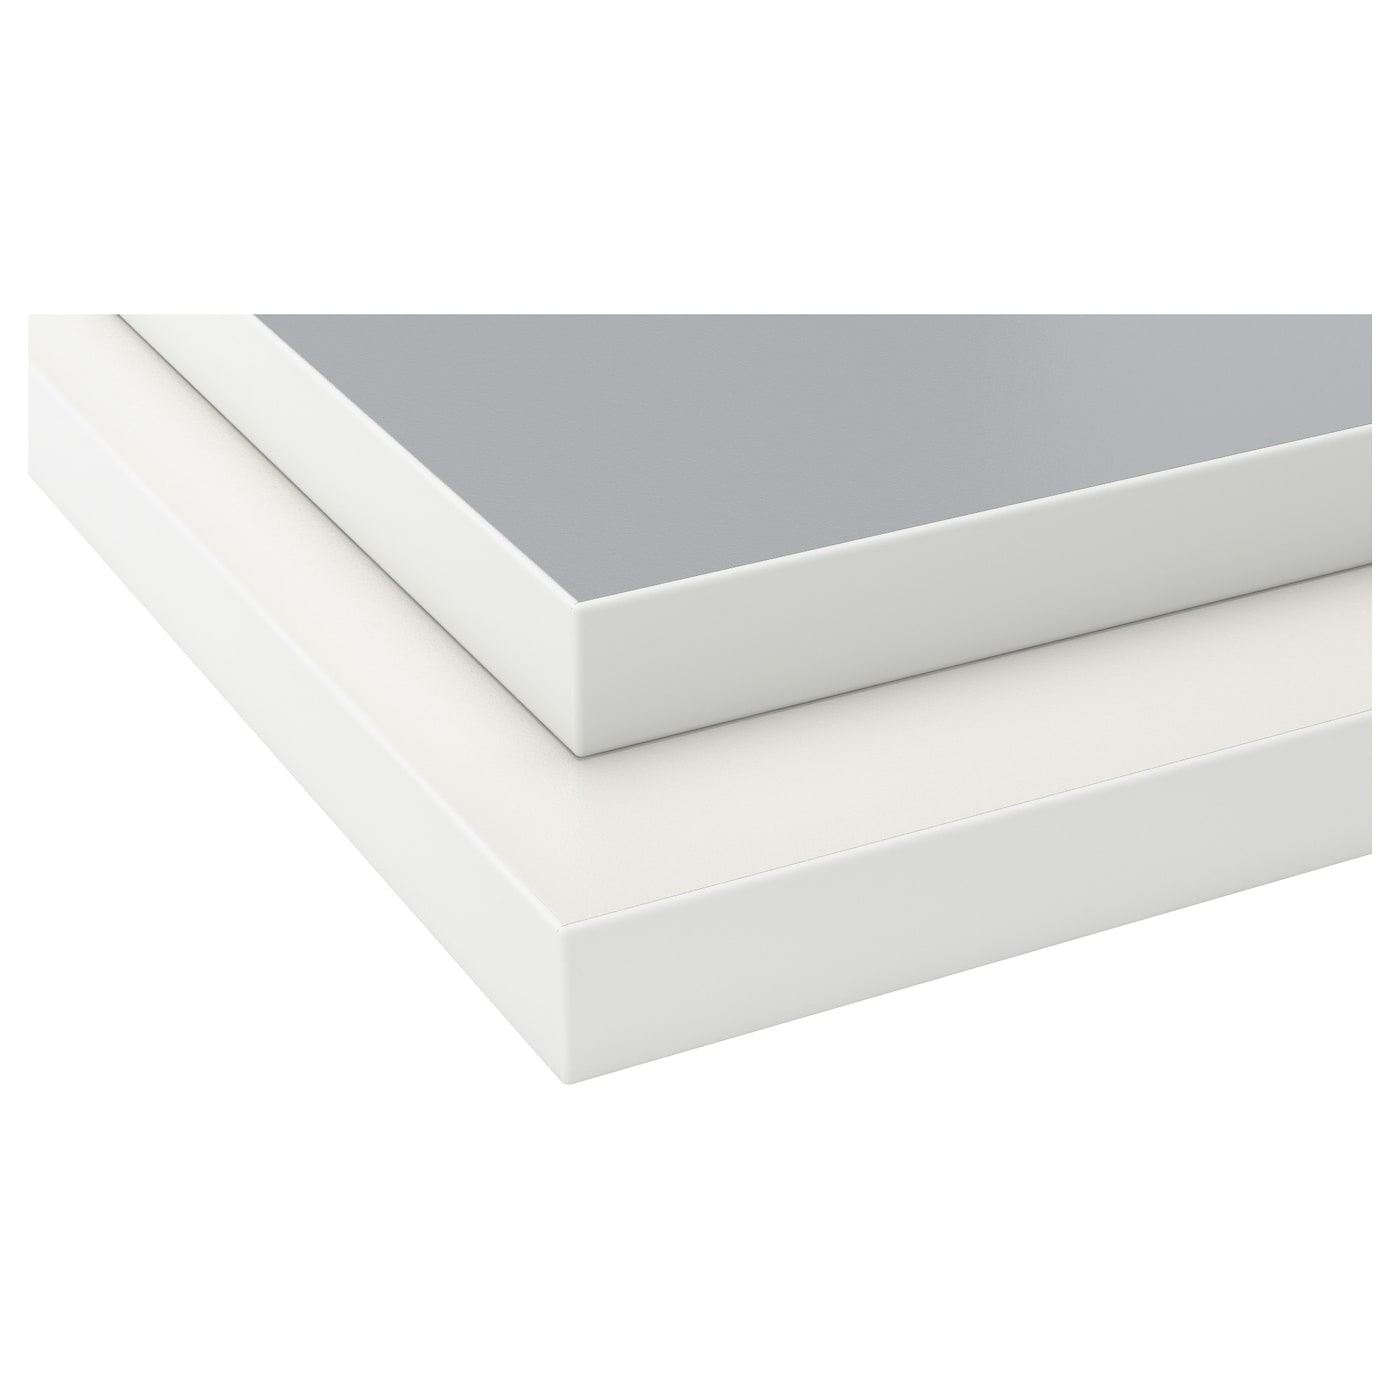 IKEA EKBACKEN worktop, double-sided